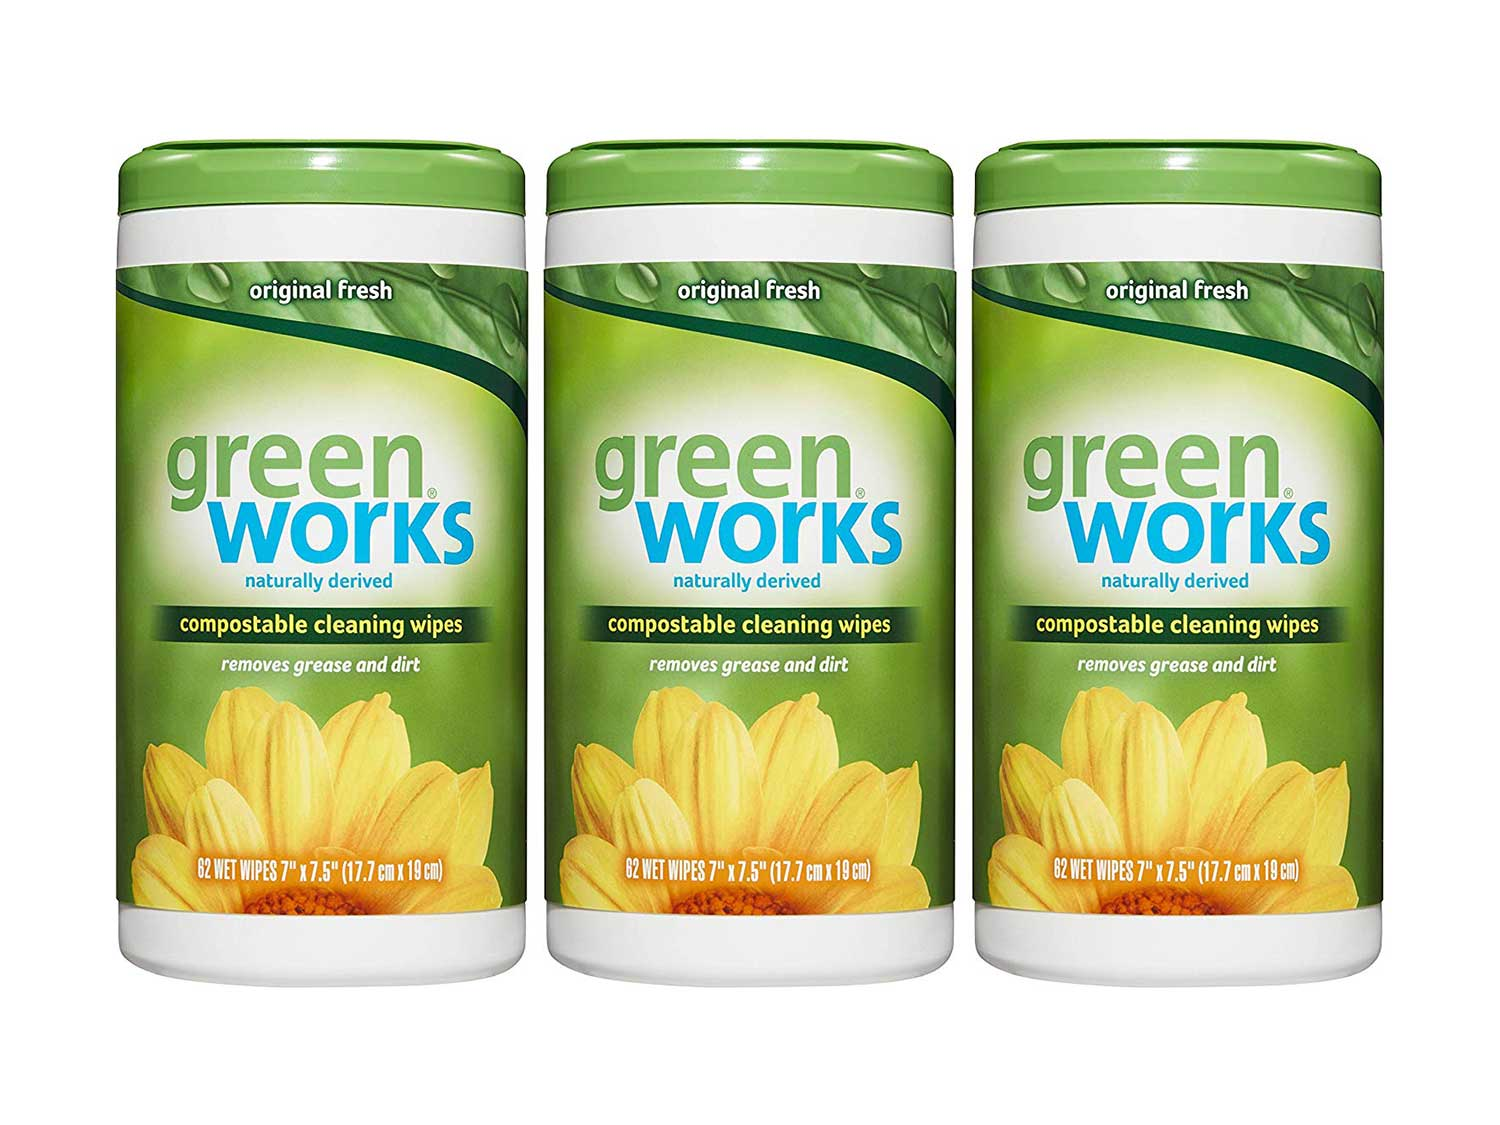 Green Works Compostable Cleaning Wipes, Biodegradable Cleaning Wipes